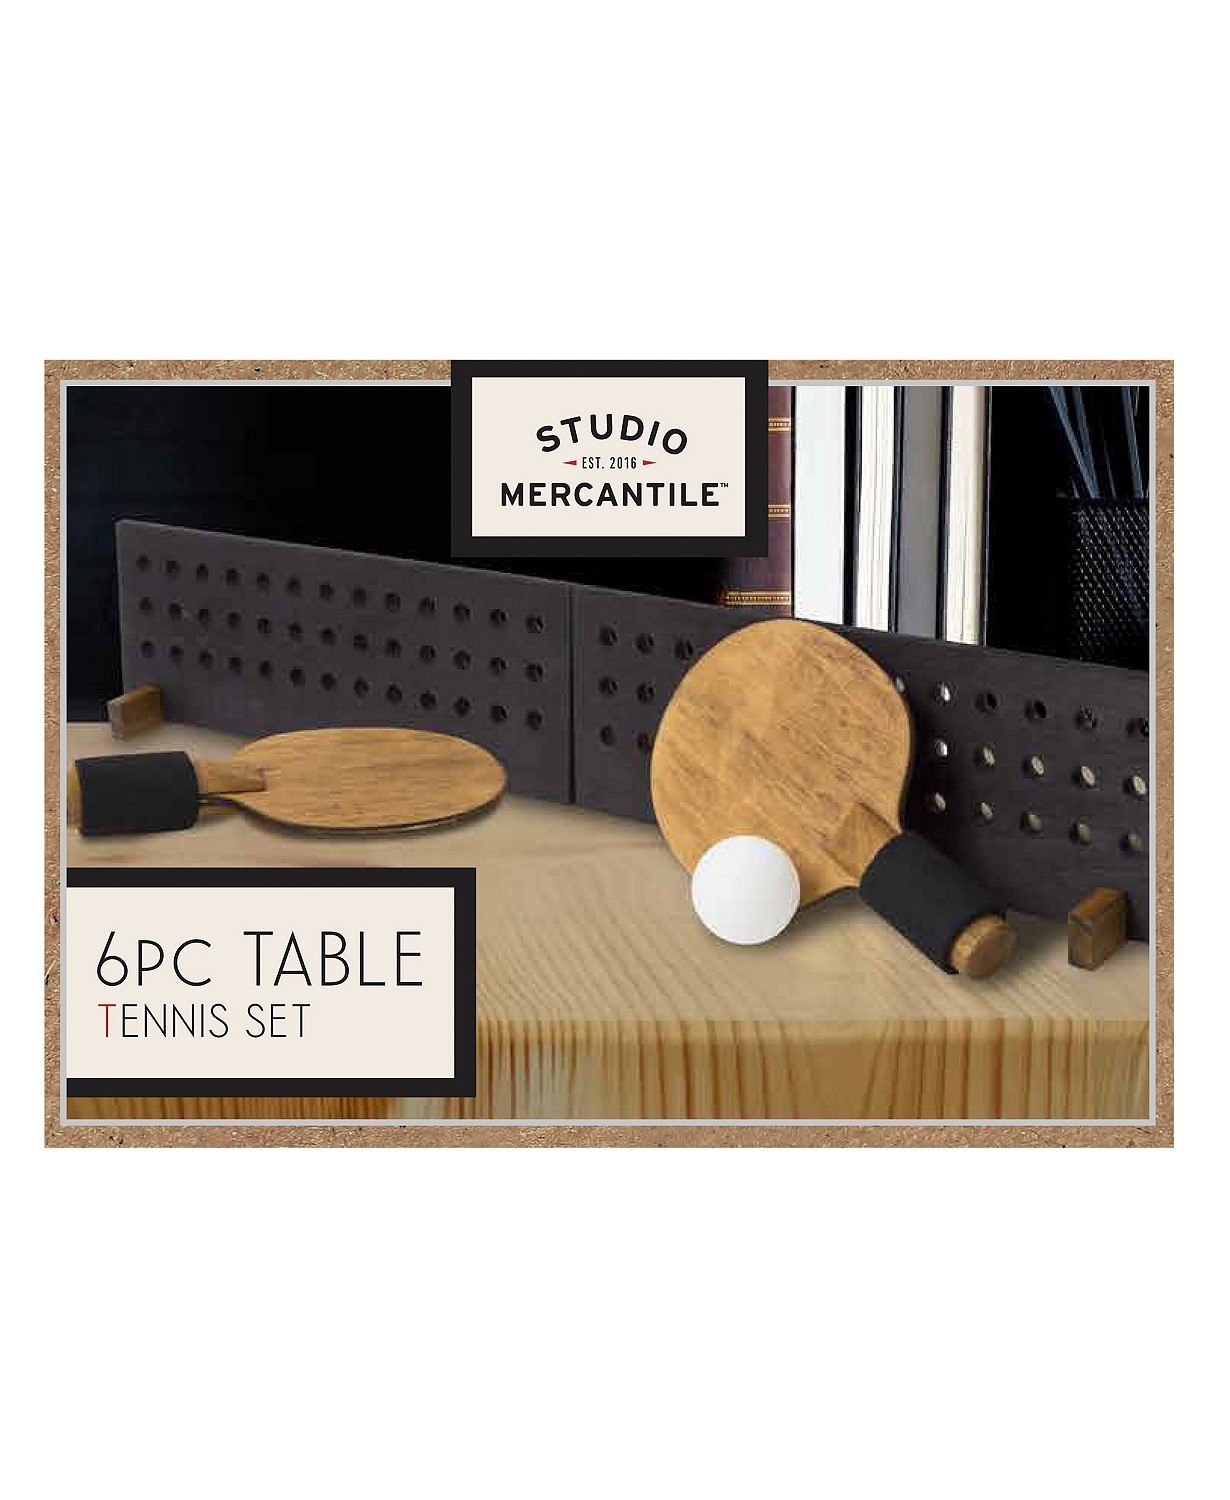 Studio Mercantile Game Desktop Table Tennis Wood